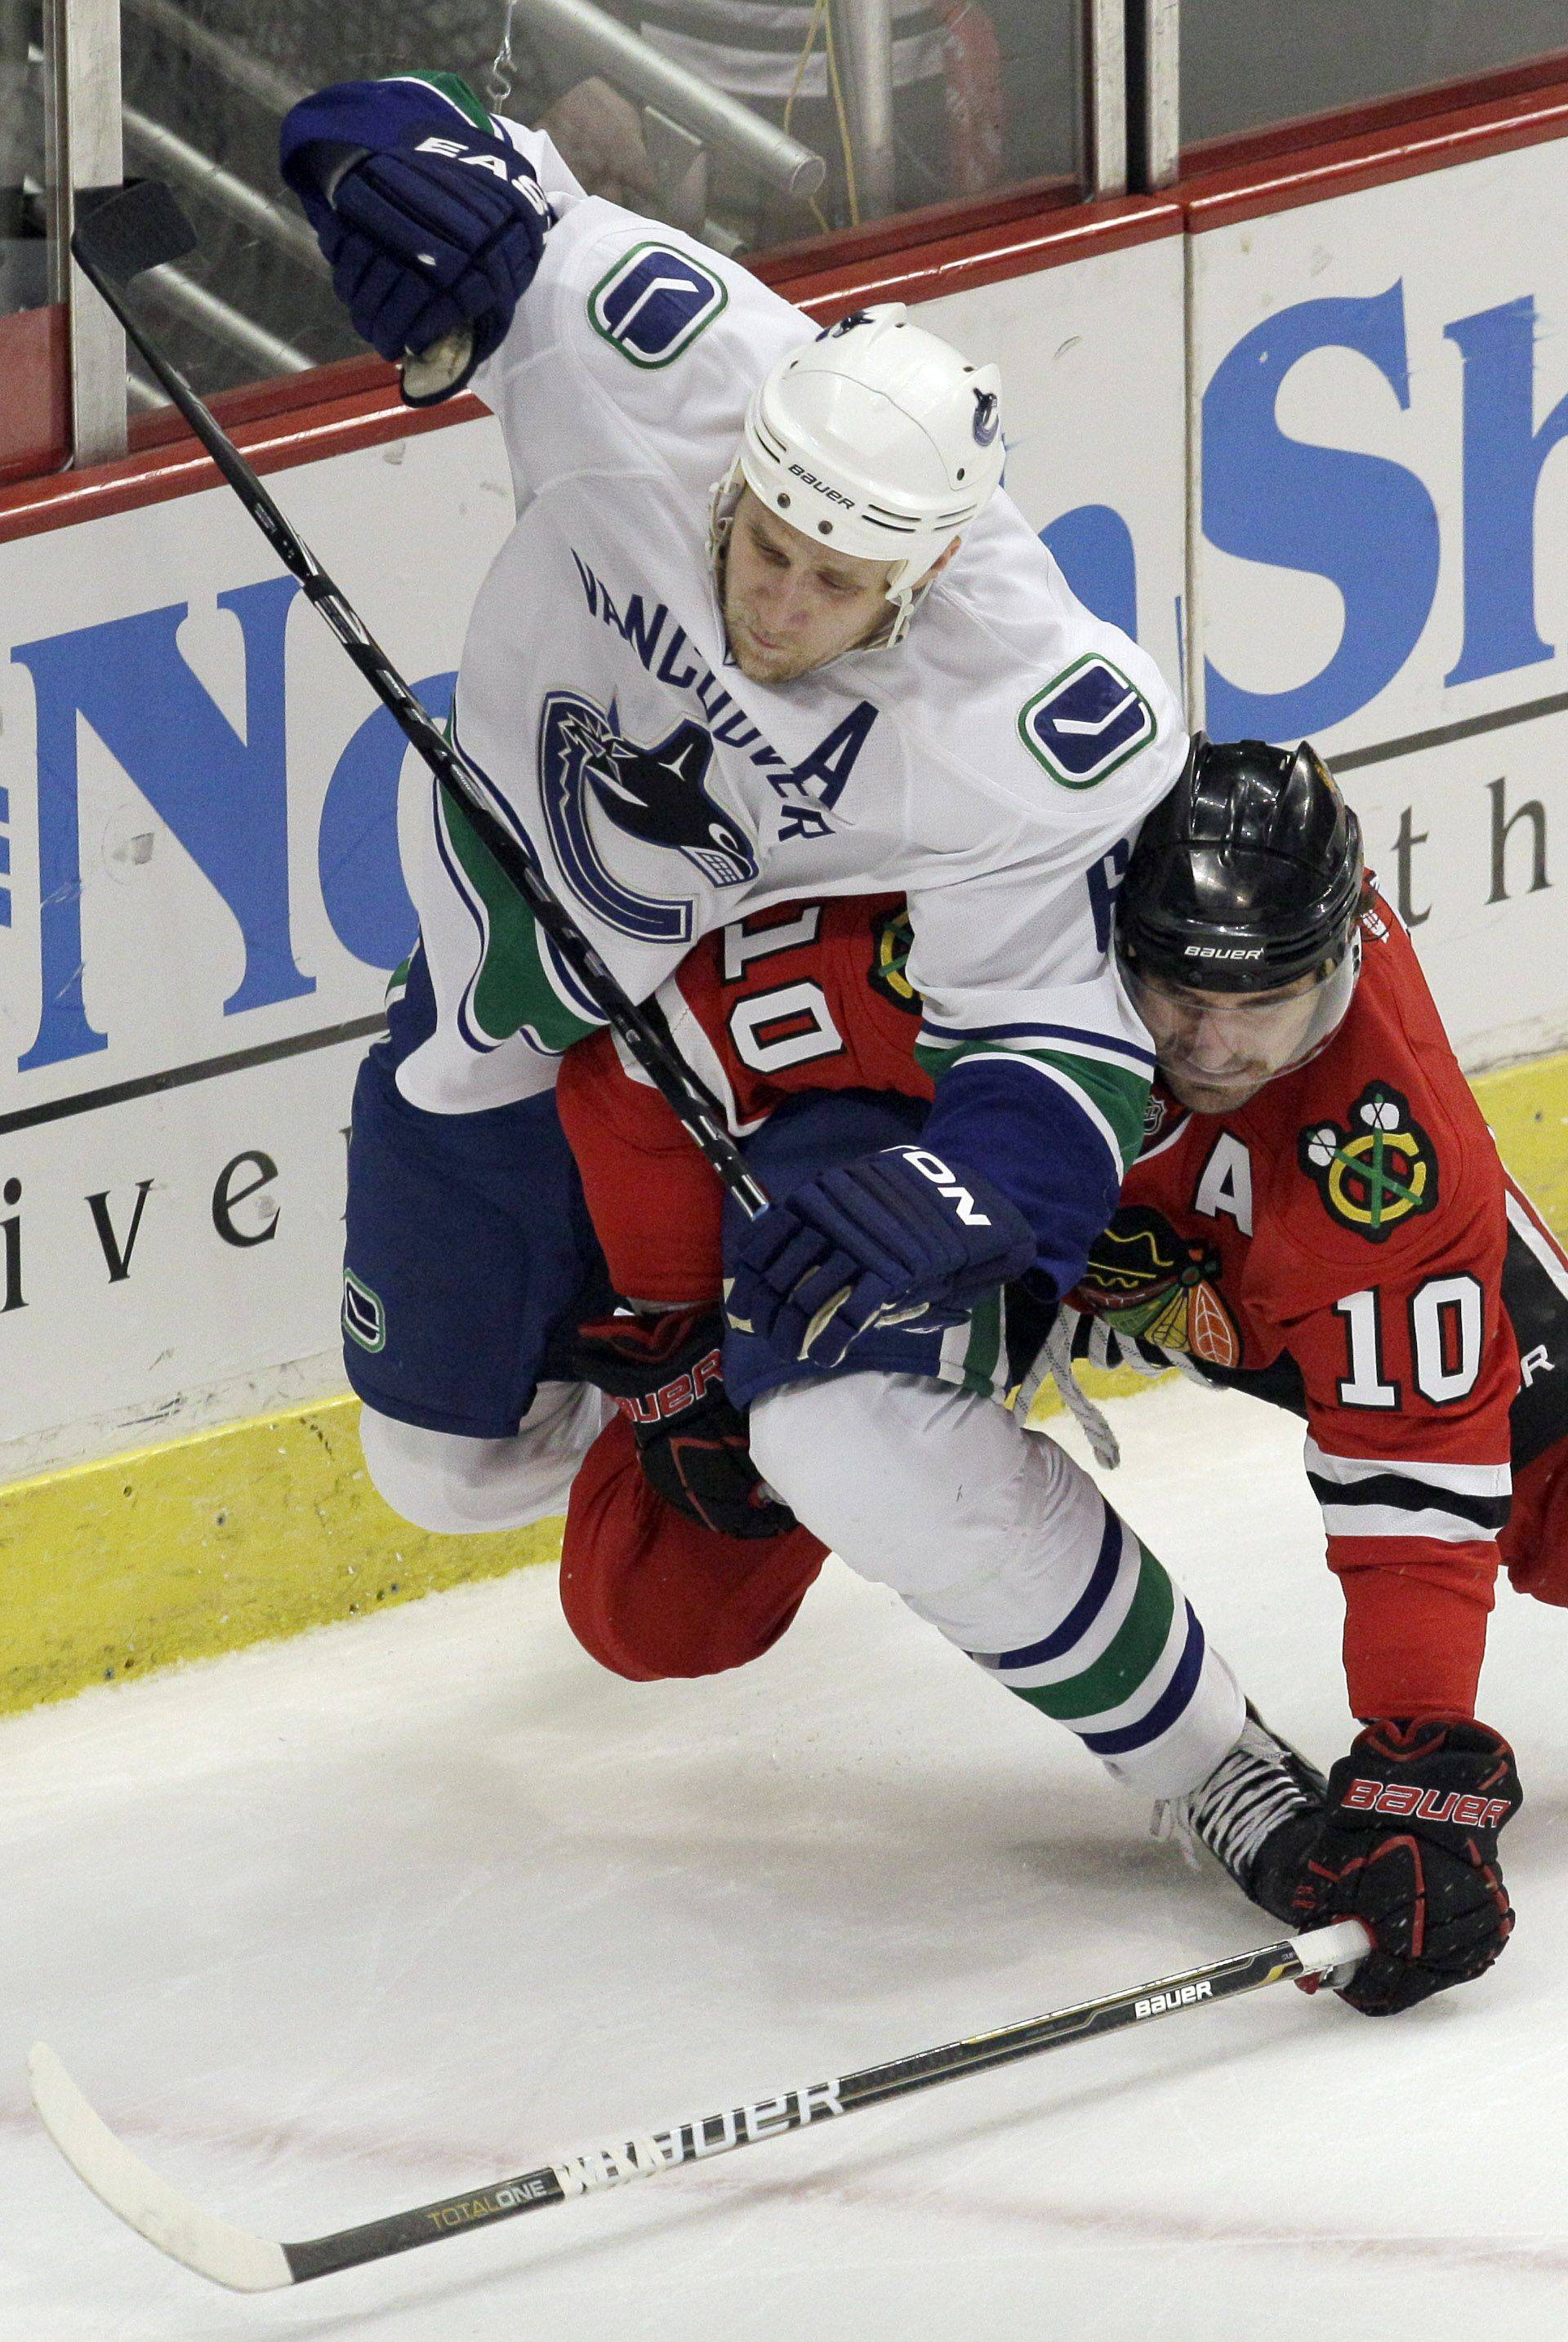 Vancouver Canucks defenseman Sami Salo, left, and Chicago Blackhawks center Patrick Sharp (10) vie for the puck during the first period.